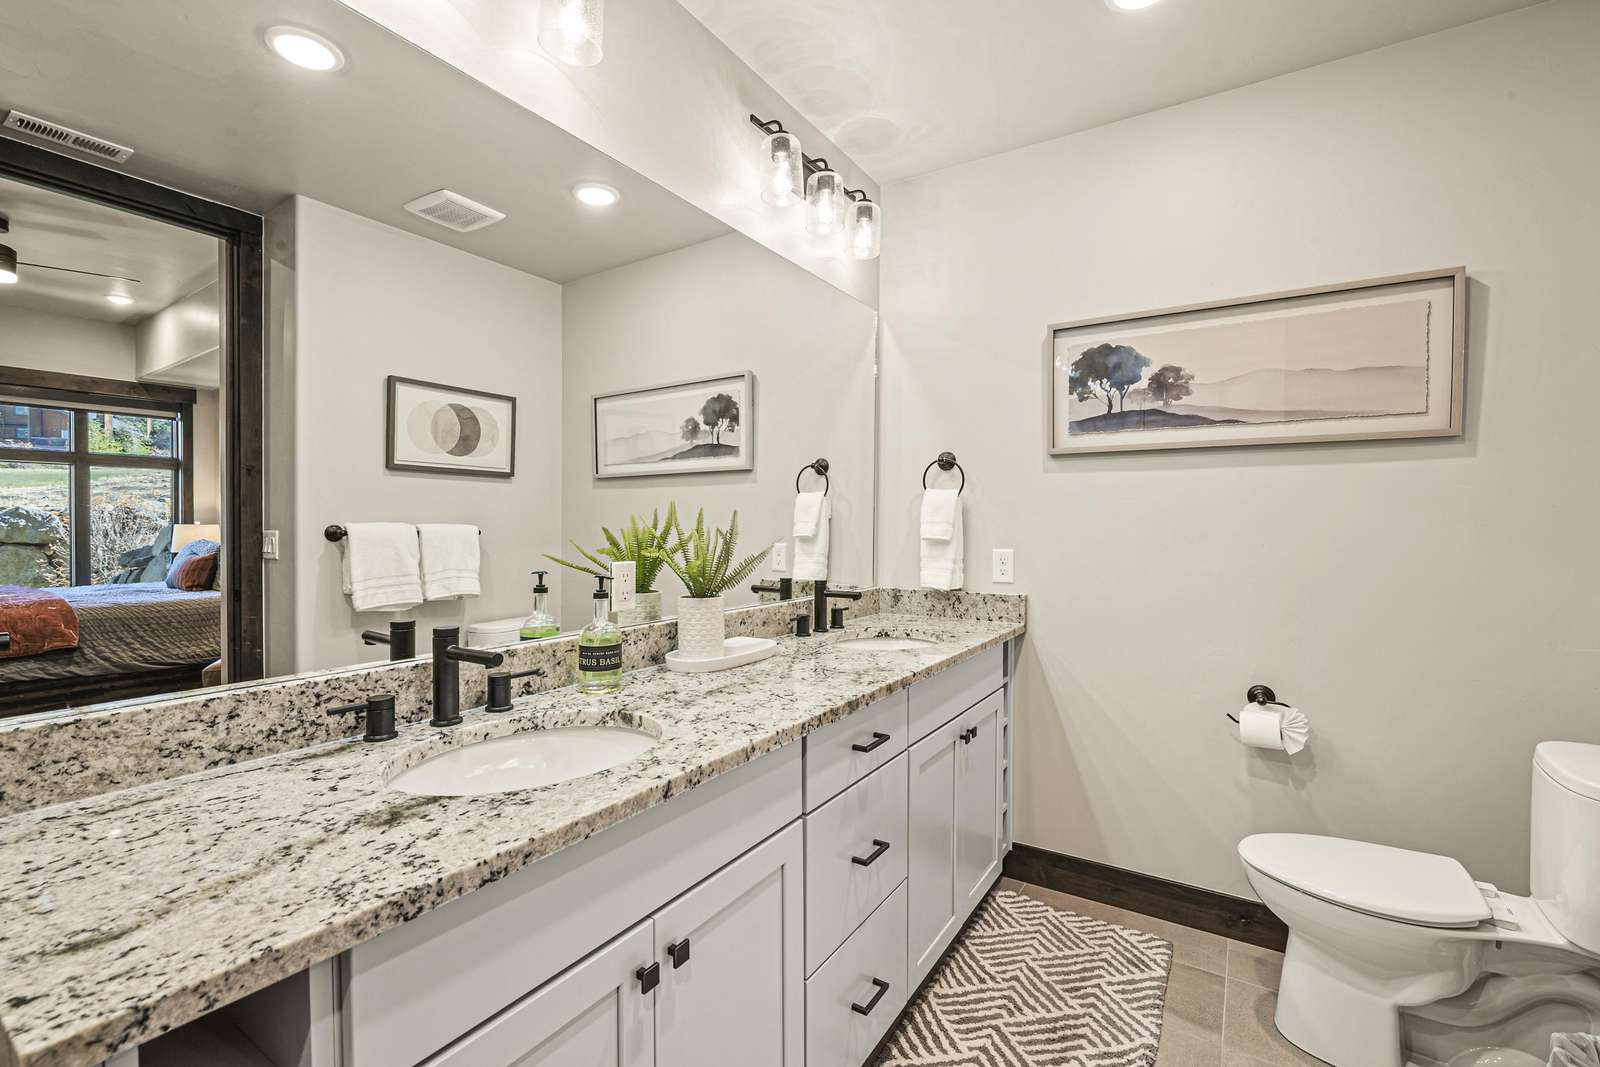 Master bathroom with a double vanity